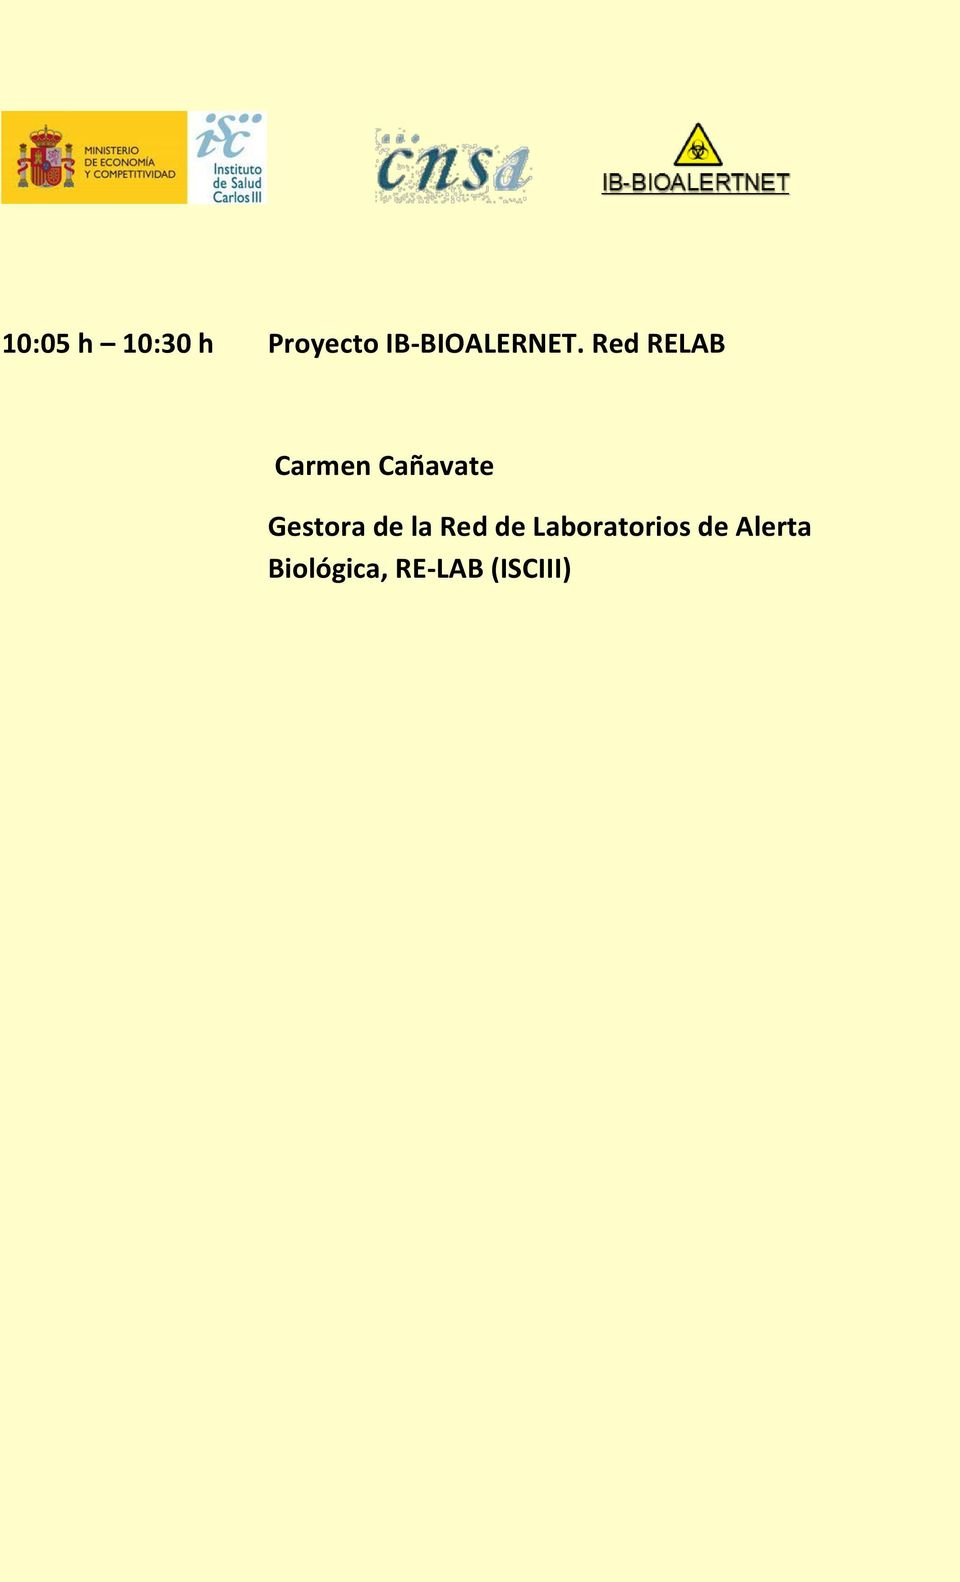 Red RELAB Carmen Cañavate Gestora